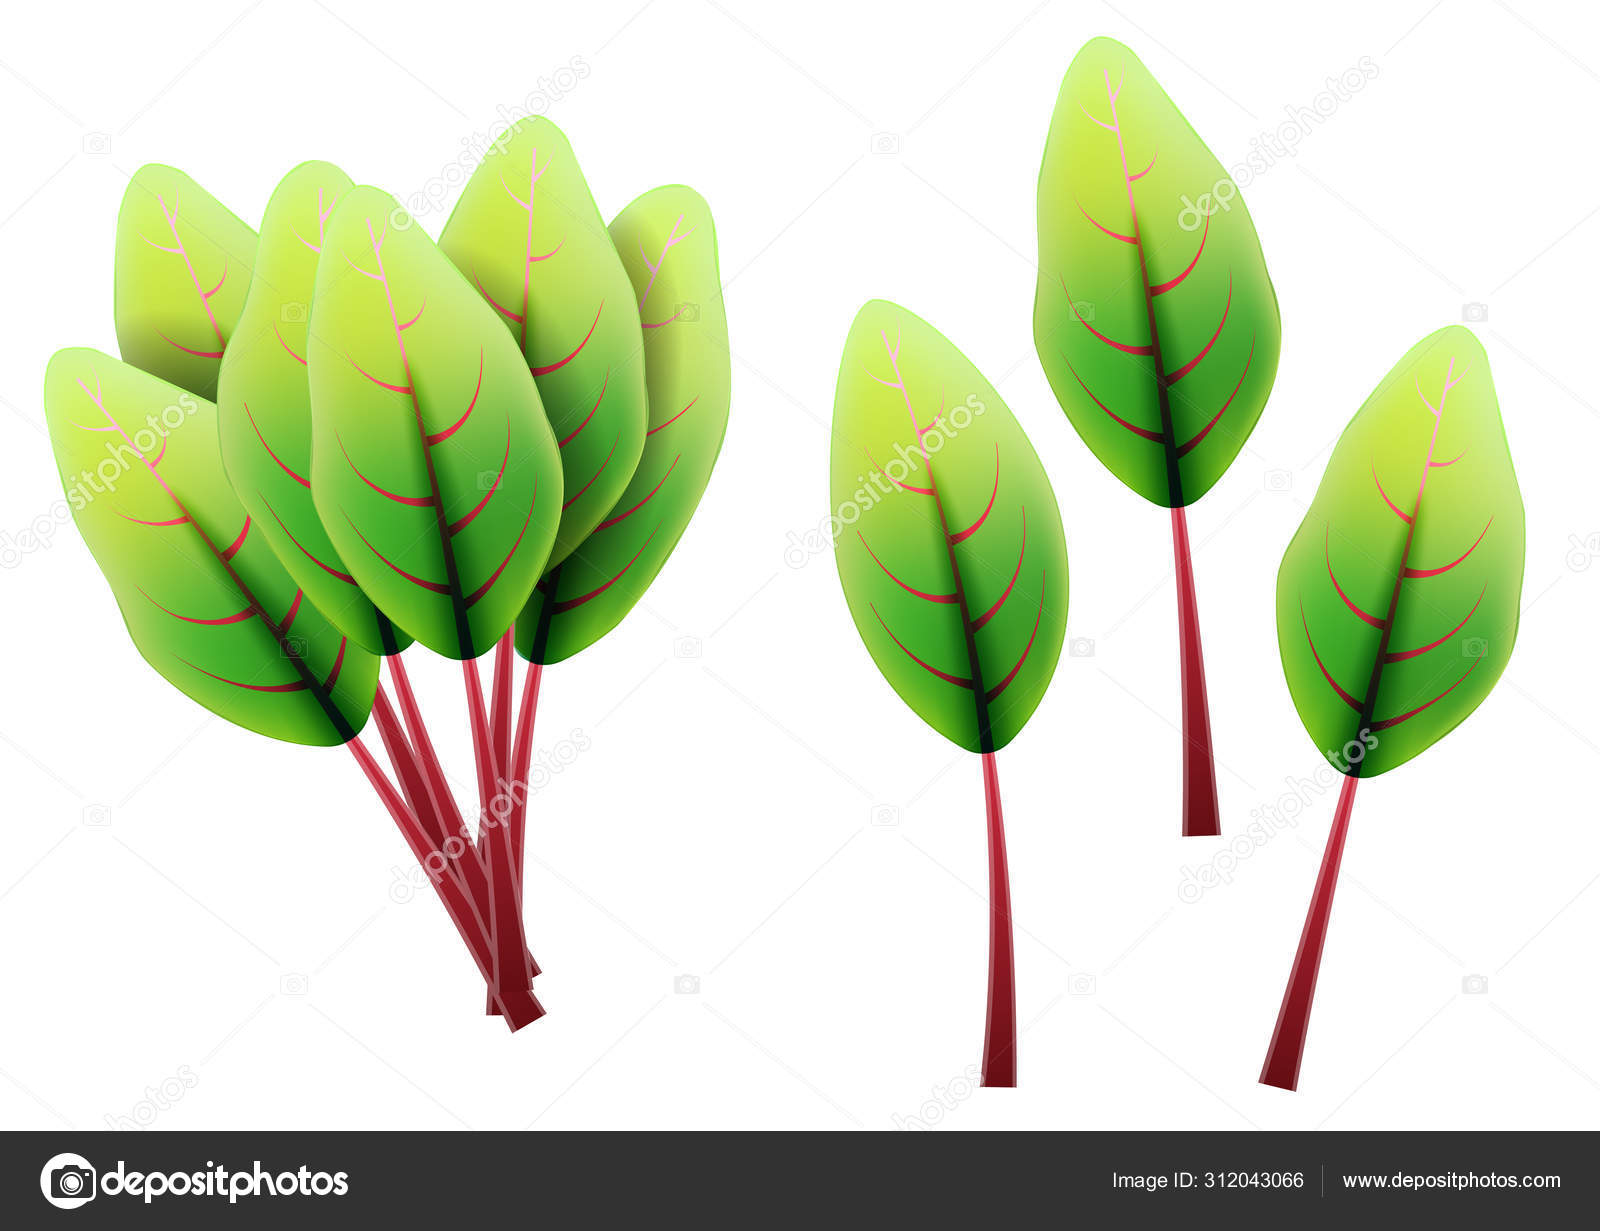 Rainbow Swiss Chard Vector Images Royalty Free Rainbow Swiss Chard Vectors Depositphotos